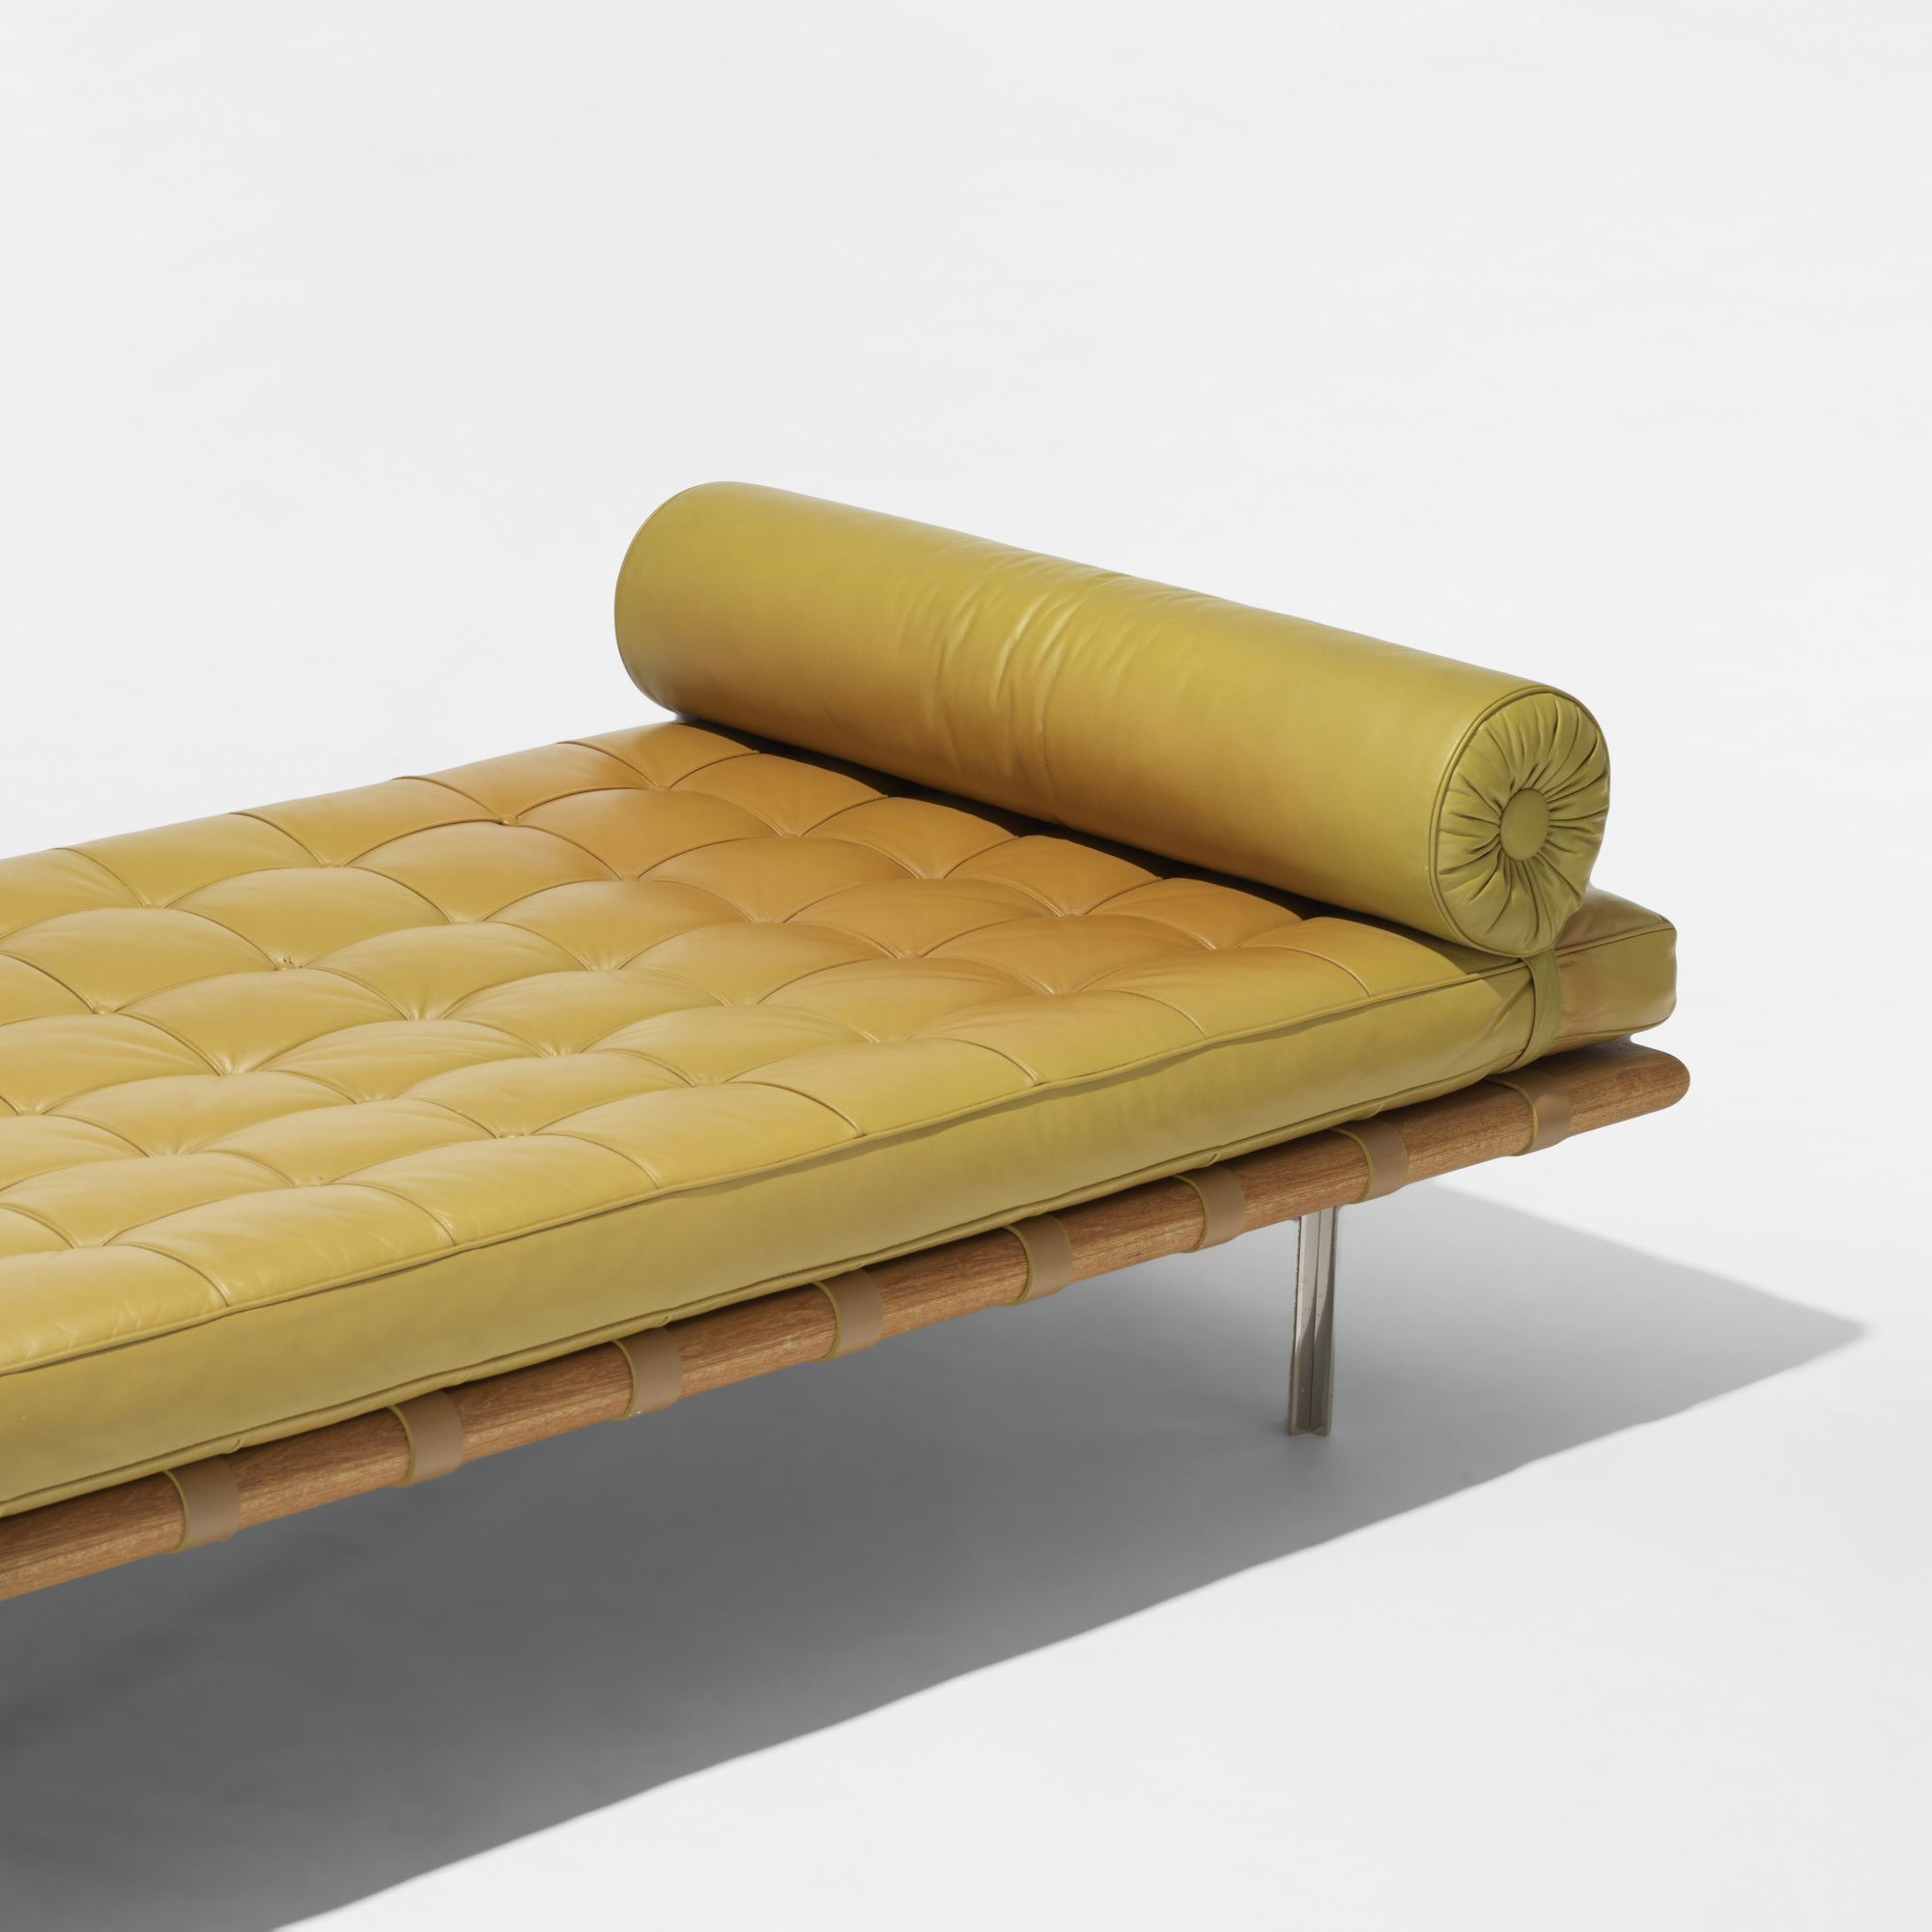 157: Ludwig Mies van der Rohe / Barcelona daybed from 860 Lake Shore Drive, Chicago (3 of 3)